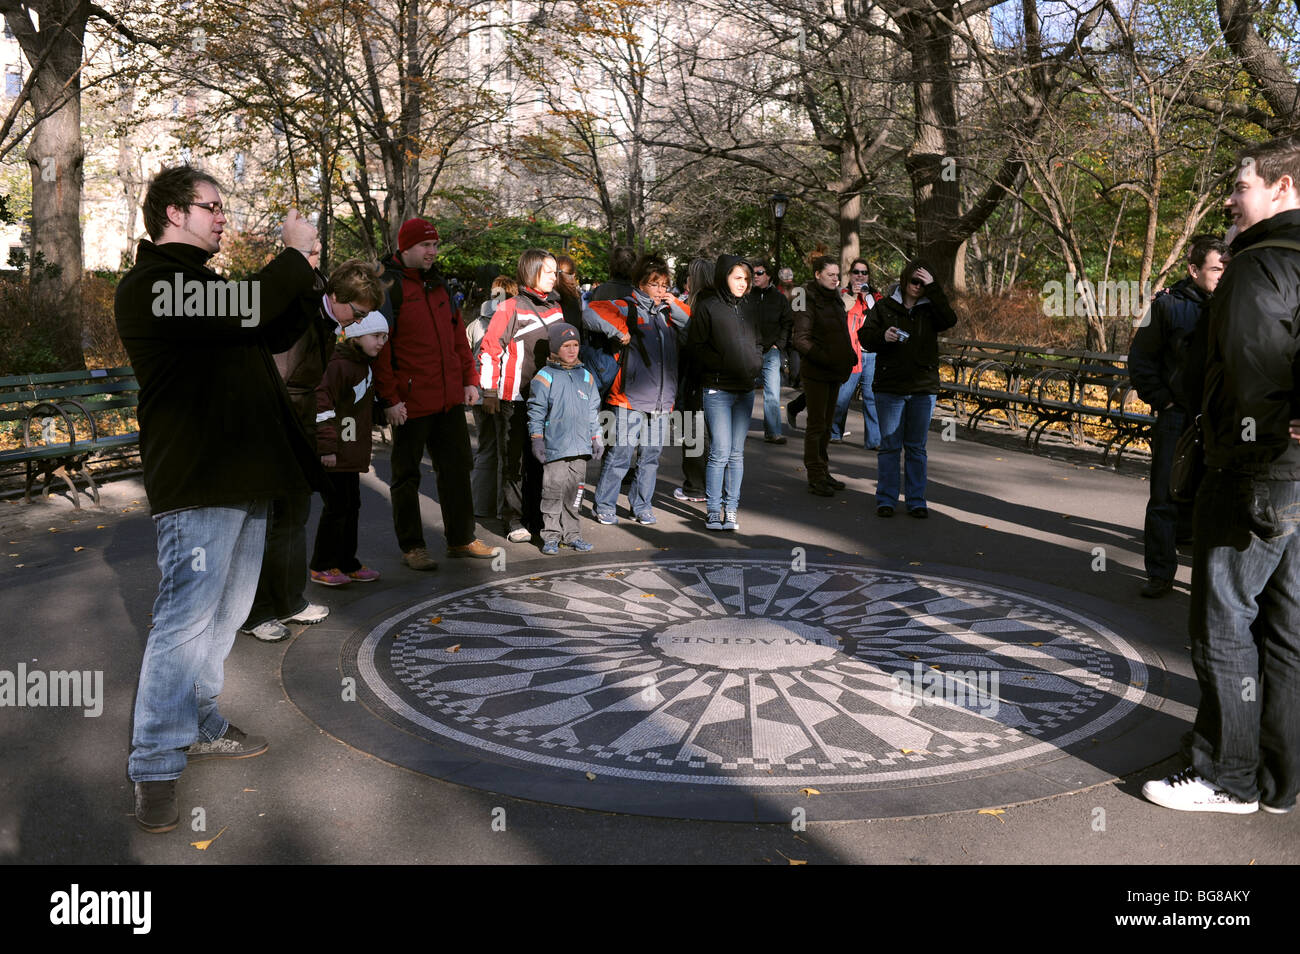 The Imagine mosaic dedicated to former Beatles musician John Lennon at Strawberry Fields in Central Park Manhattan - Stock Image